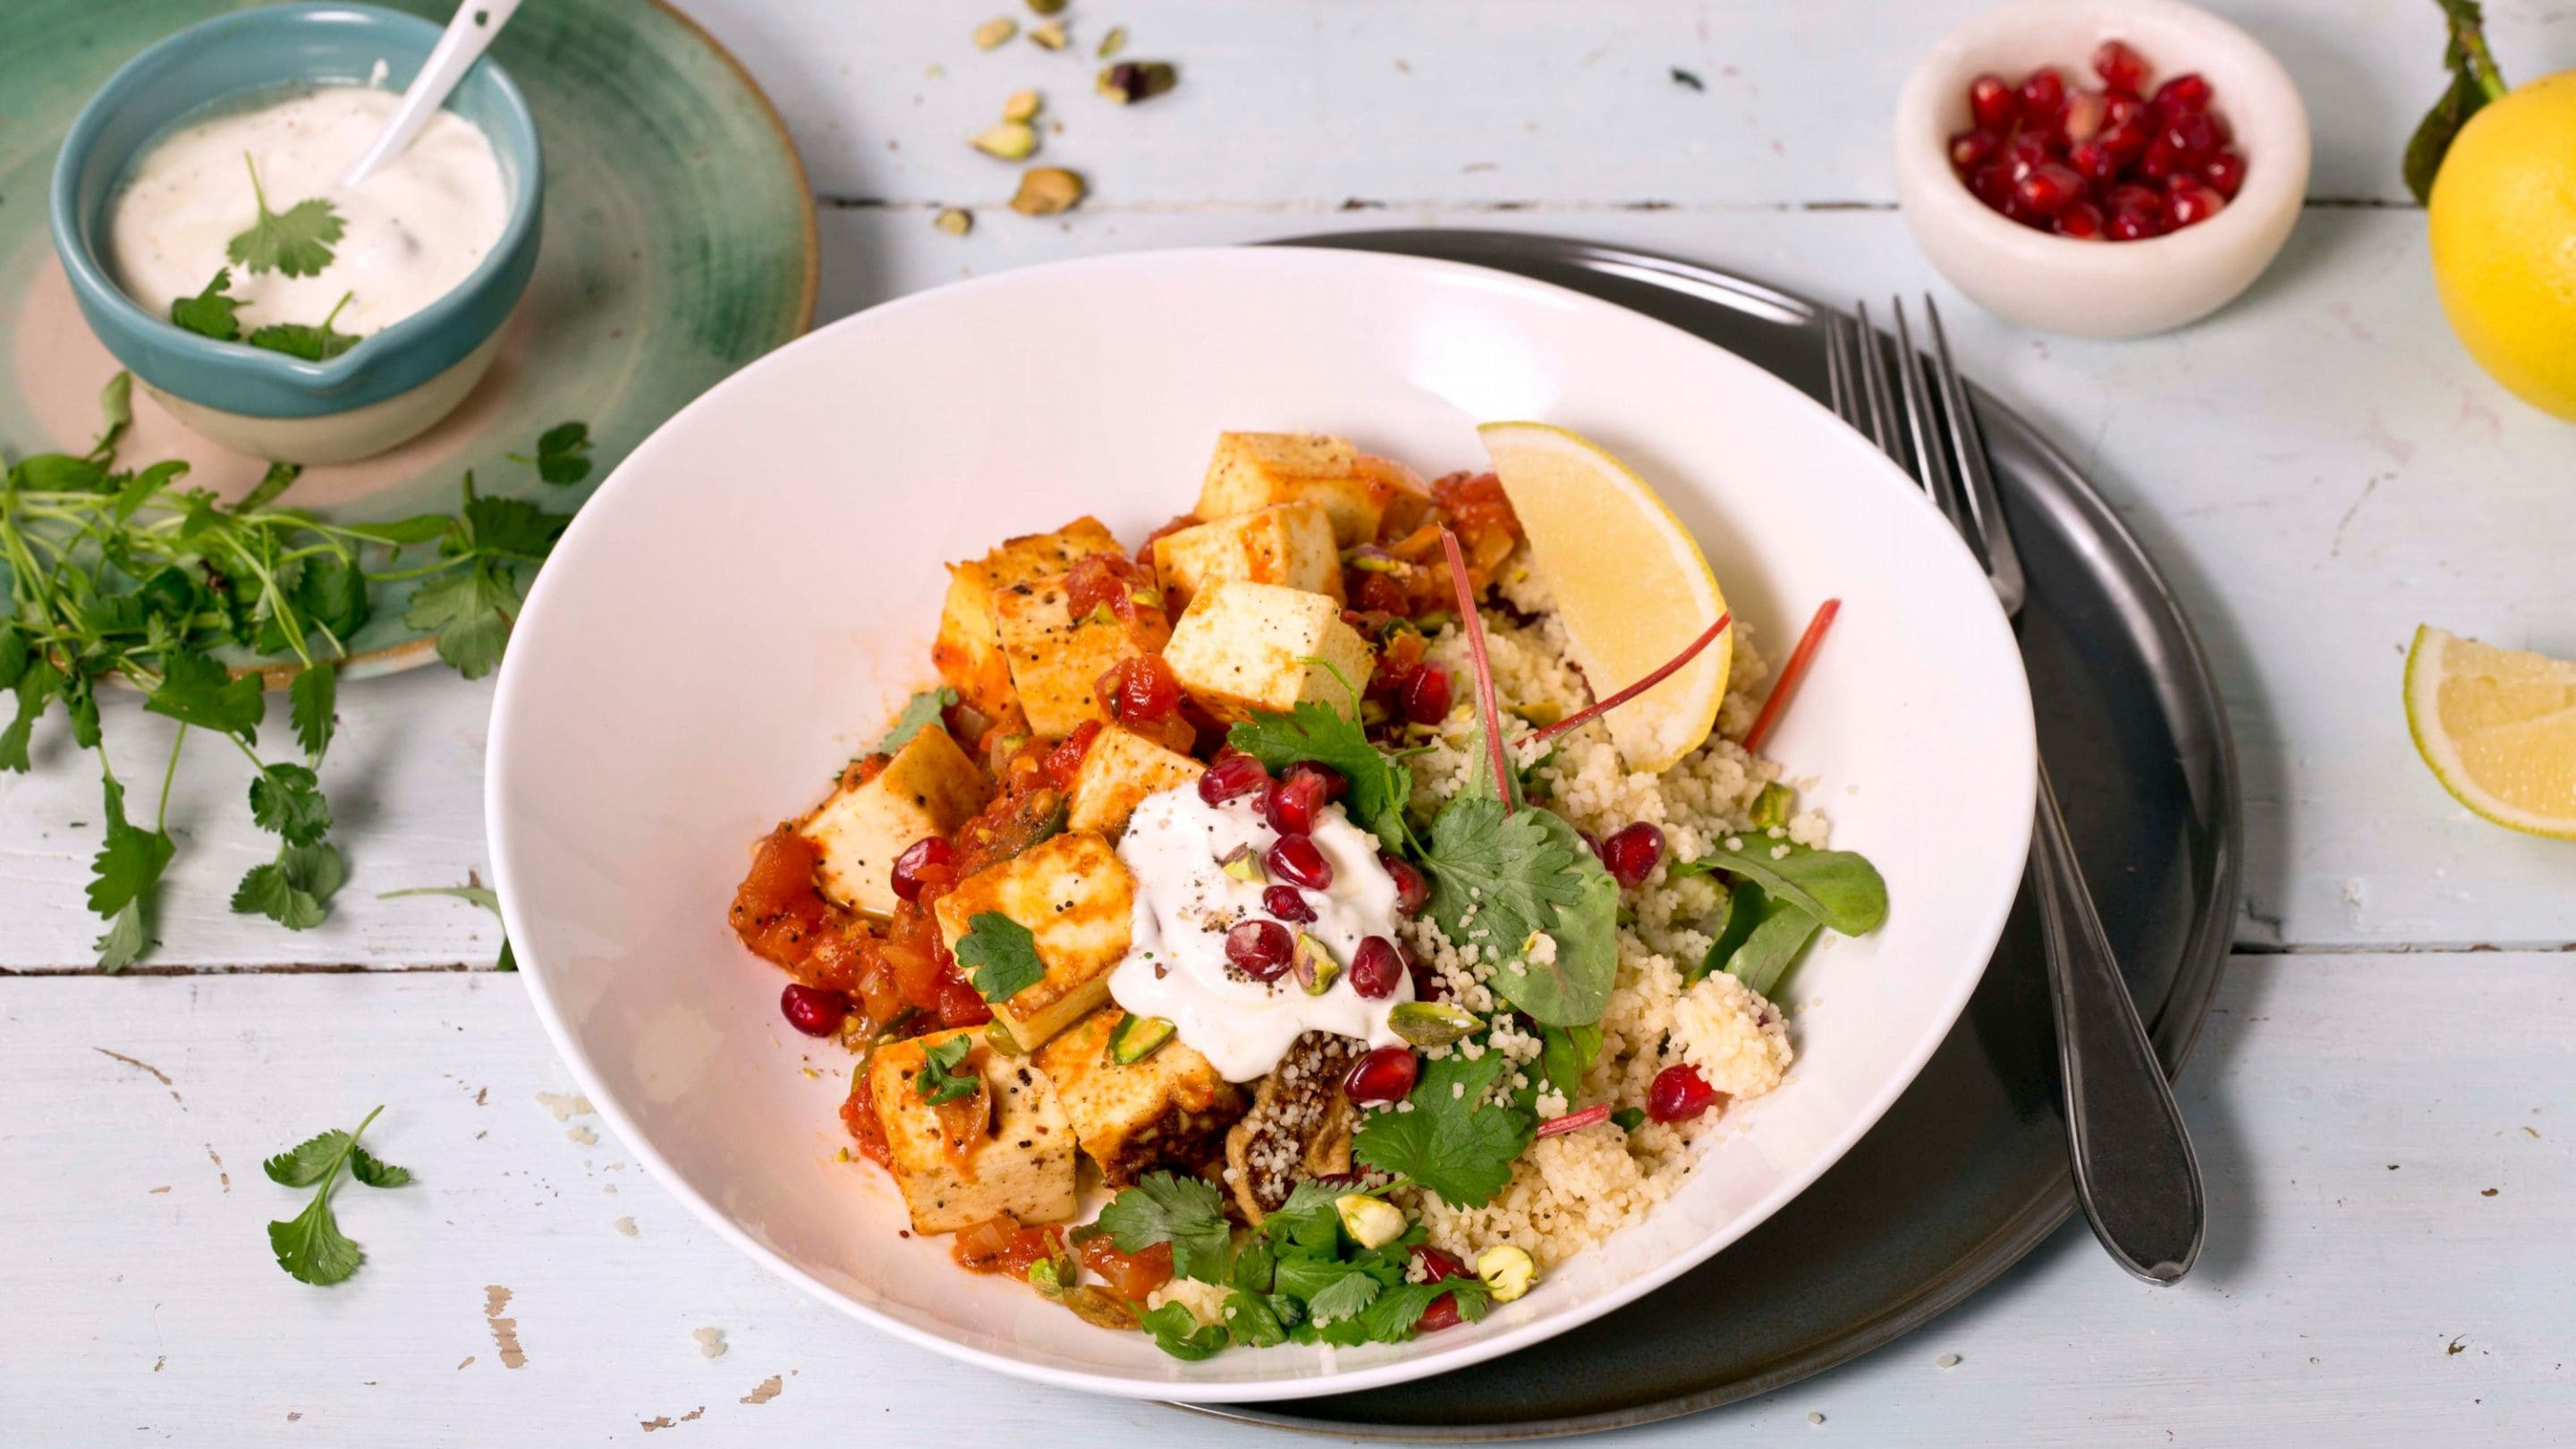 Paneer i spicy tomatsaus med couscous